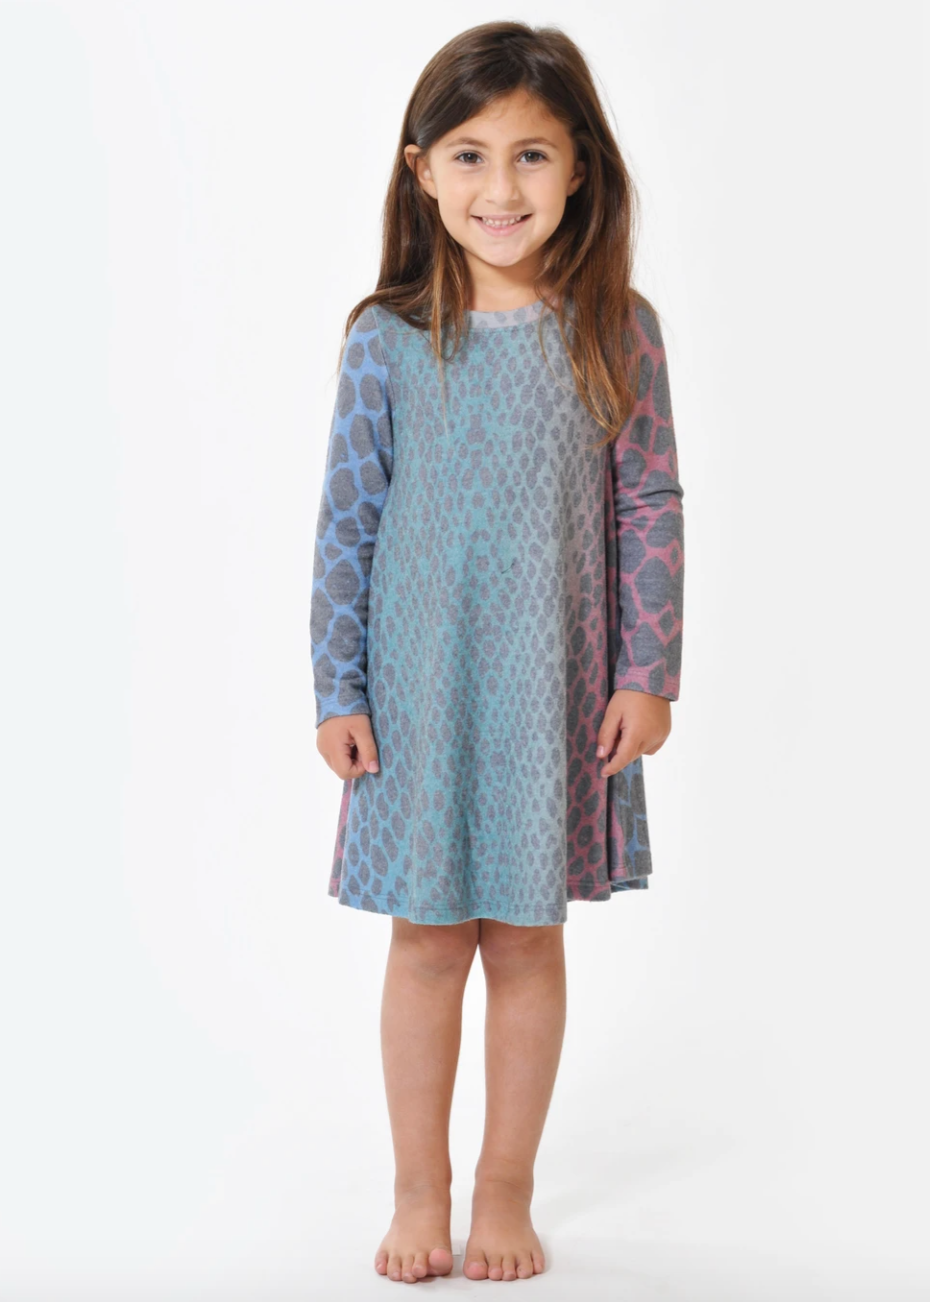 Sol Angeles Kids Rainbow Python Hacci Dress